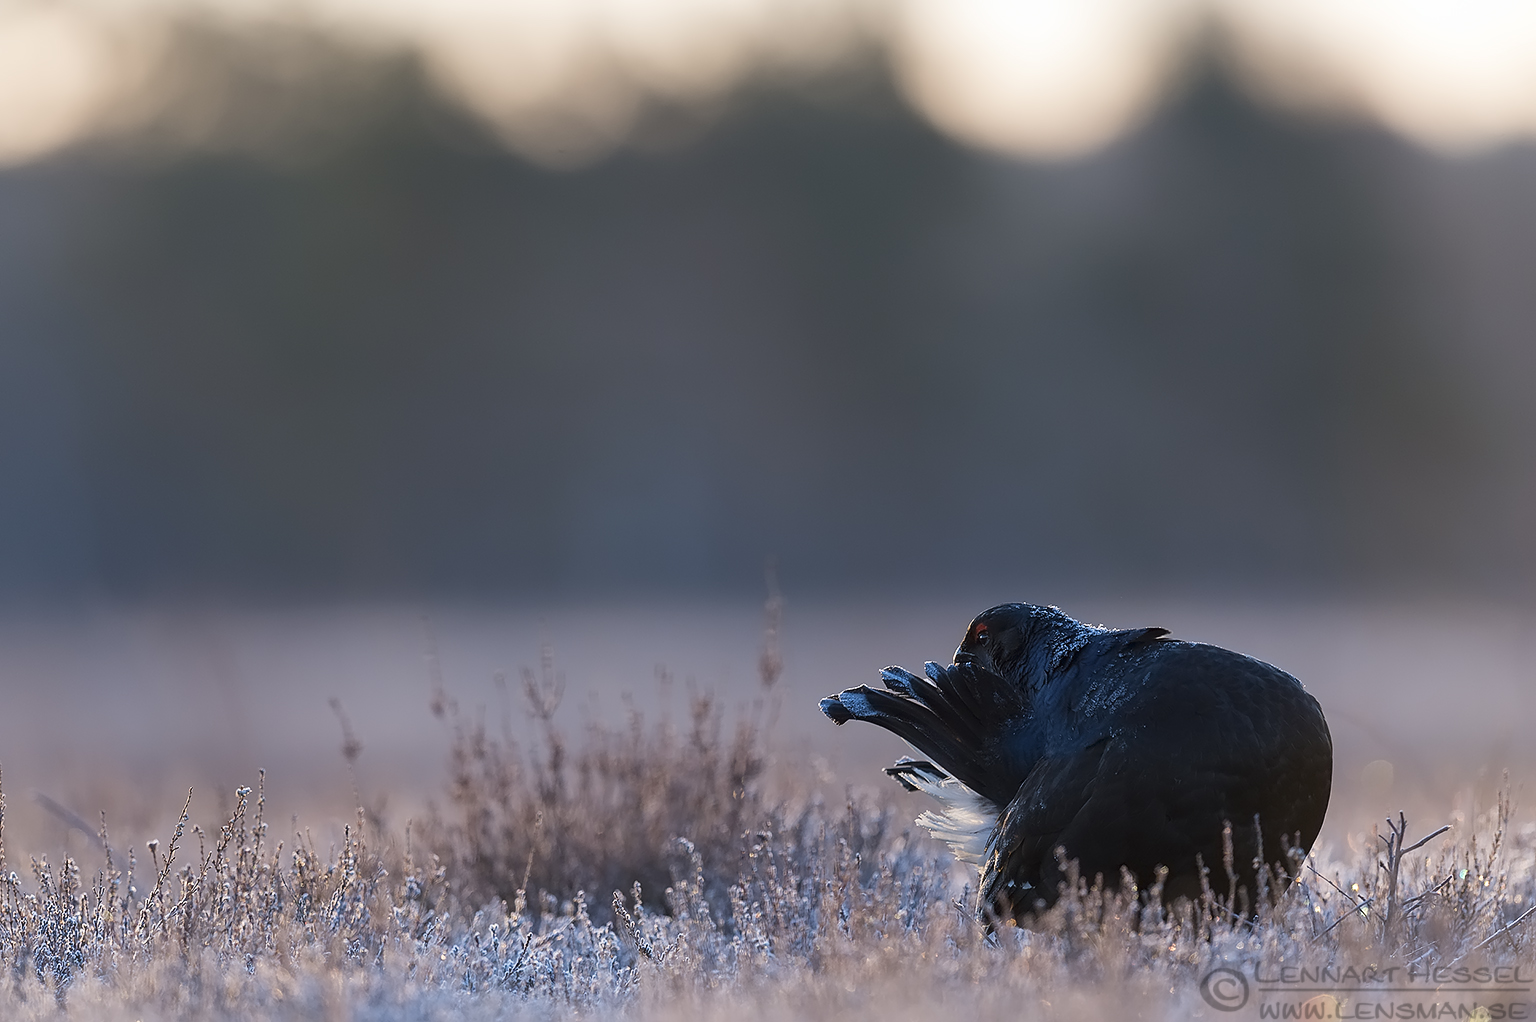 Black Grouse preening start lek season